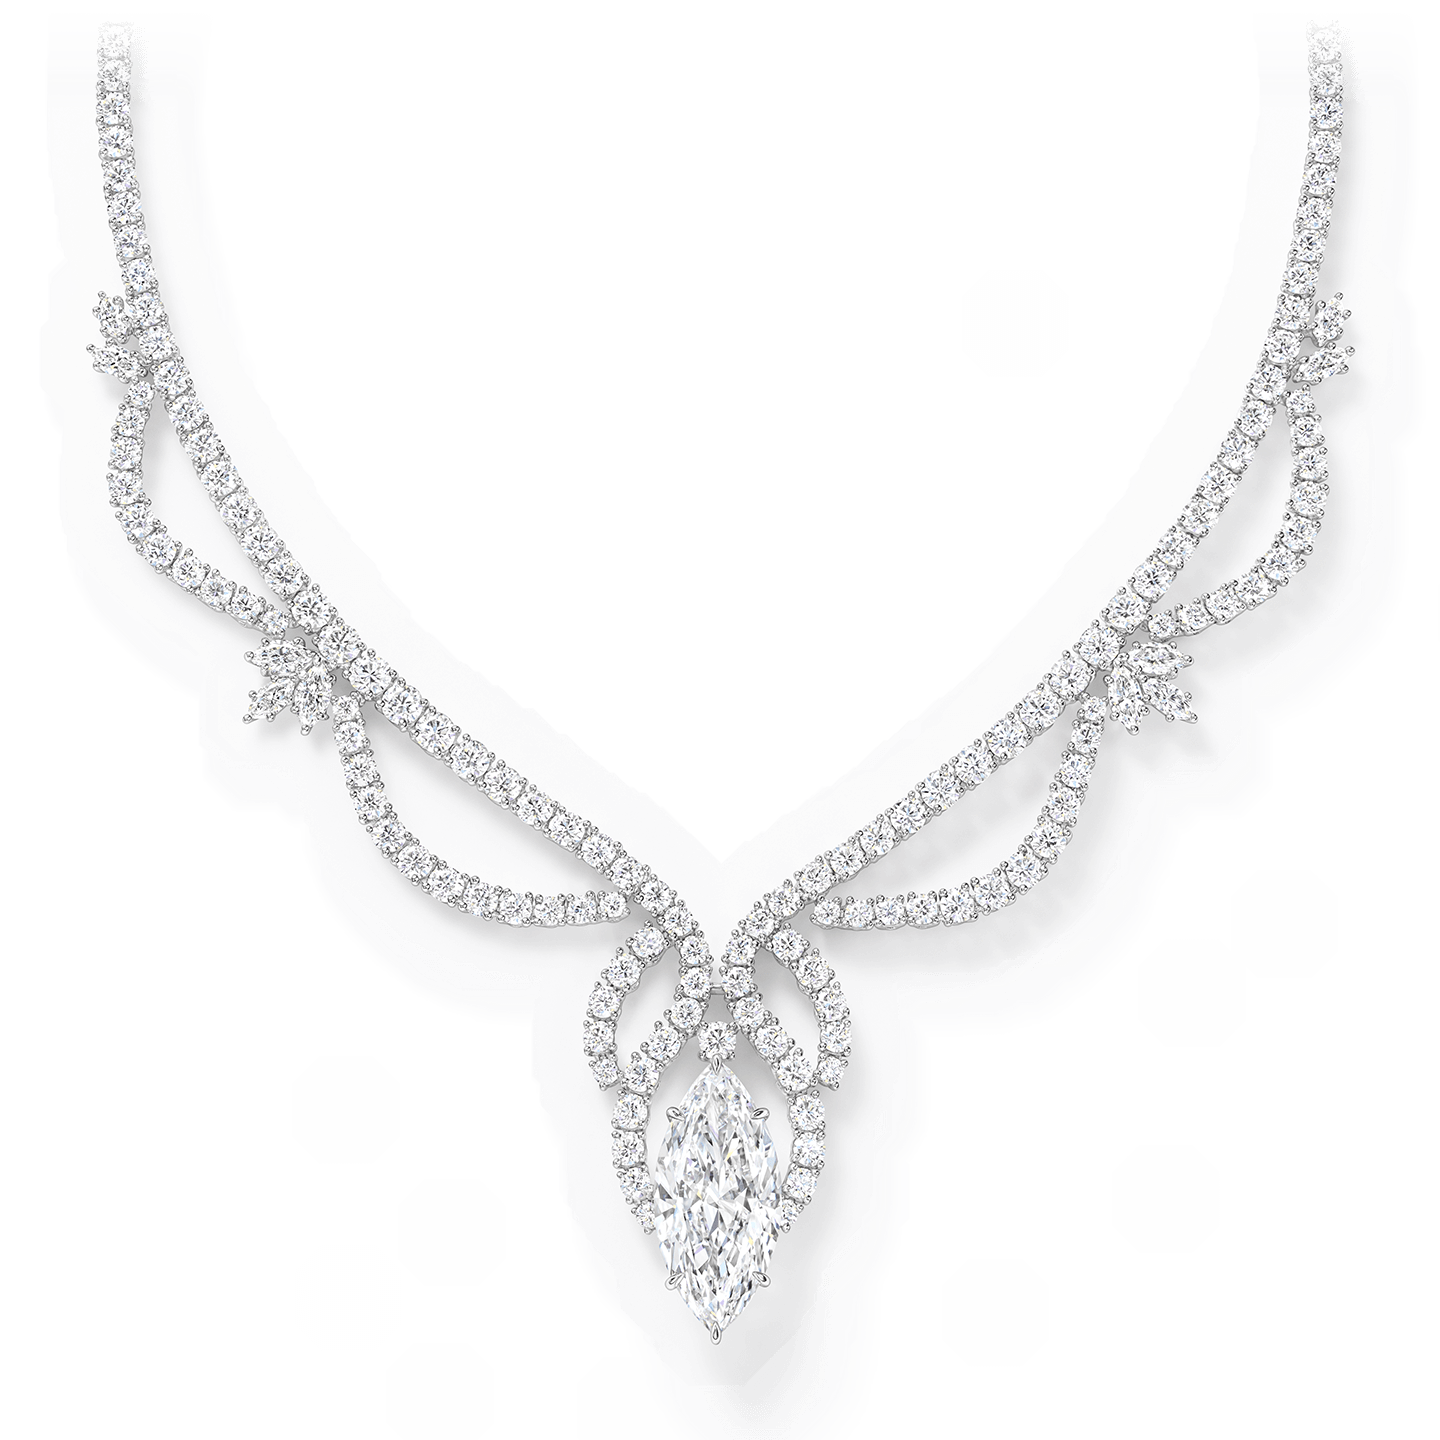 A spectacular diamond necklace featuring a marquise diamond weighing 10.72 carats with 205 marquise and round brilliant diamonds set in platinum